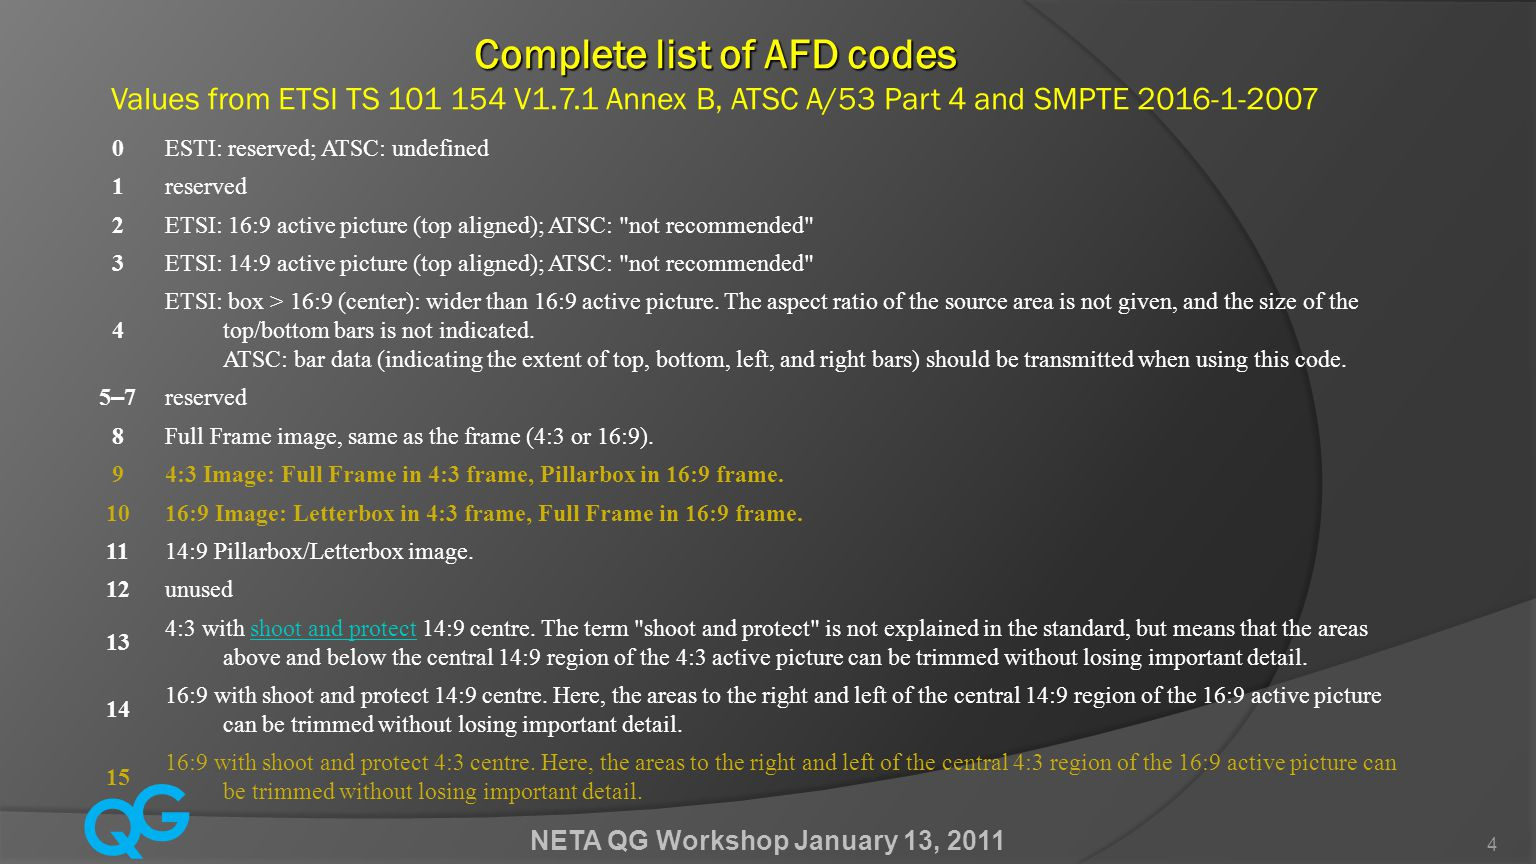 Q G NETA QG Workshop January 13, 2011 4 Complete list of AFD codes Complete list of AFD codes Values from ETSI TS 101 154 V1.7.1 Annex B, ATSC A/53 Part 4 and SMPTE 2016-1-2007 0ESTI: reserved; ATSC: undefined 1reserved 2ETSI: 16:9 active picture (top aligned); ATSC: not recommended 3ETSI: 14:9 active picture (top aligned); ATSC: not recommended 4 ETSI: box > 16:9 (center): wider than 16:9 active picture.